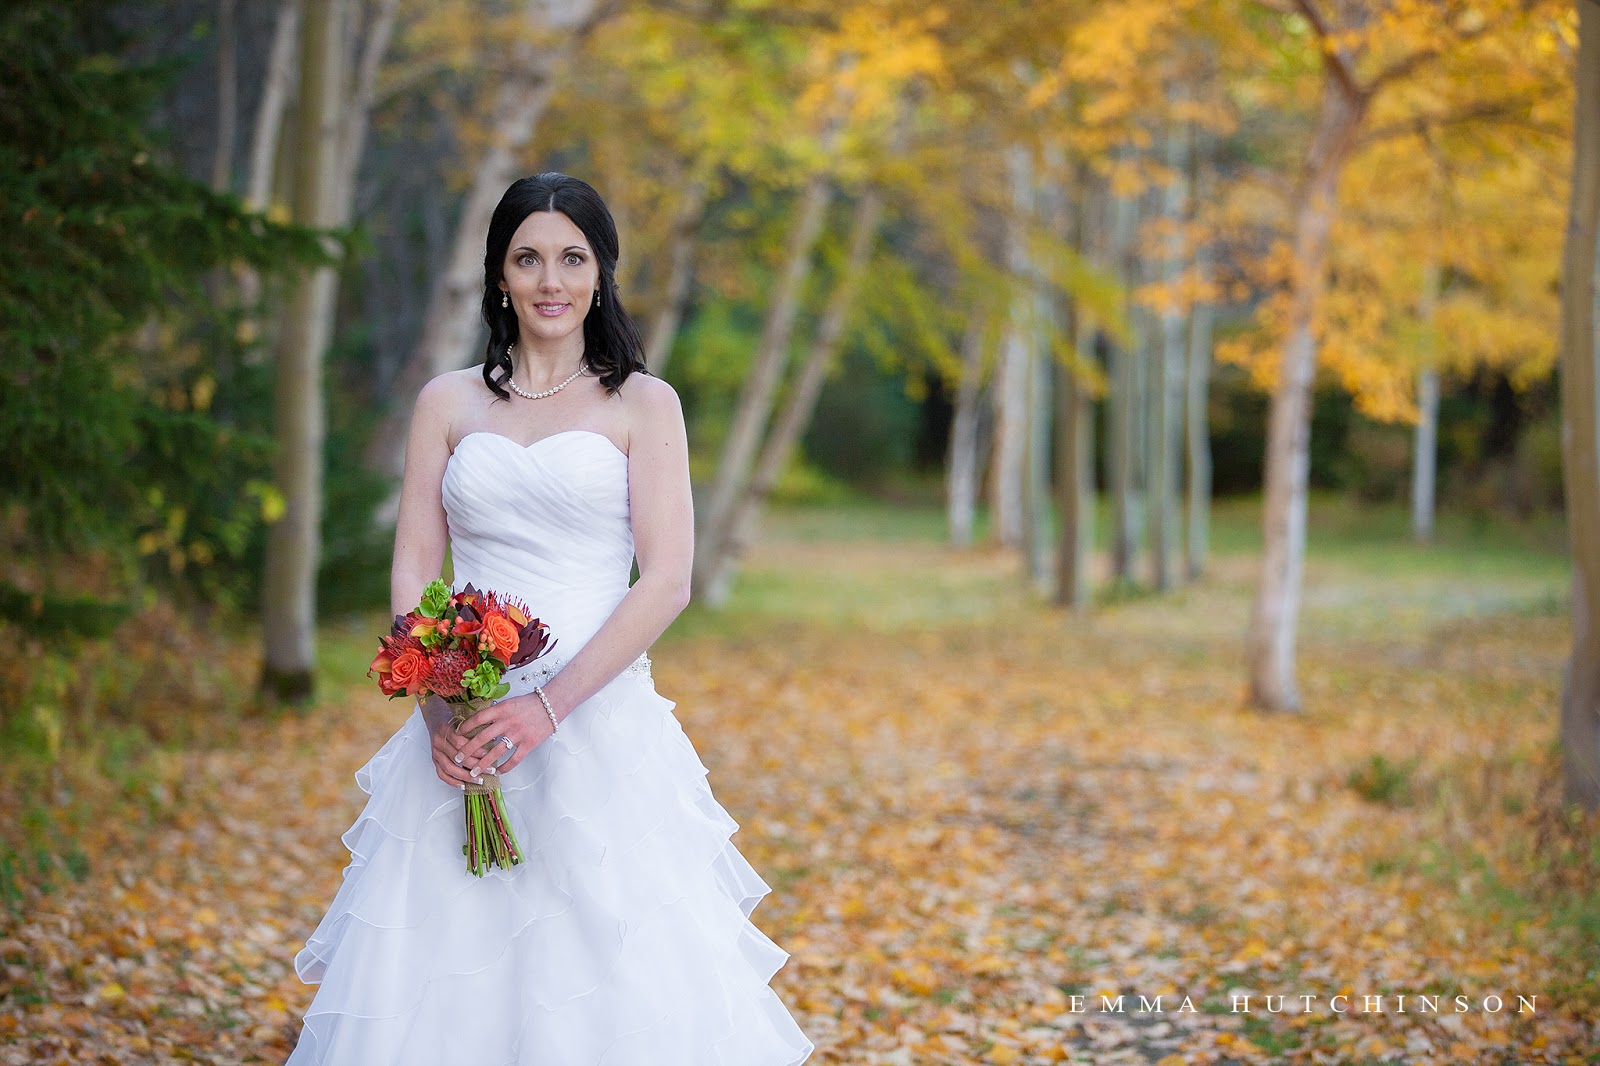 Emma Hutchinson Photography photographs weddings in Lewsiporte